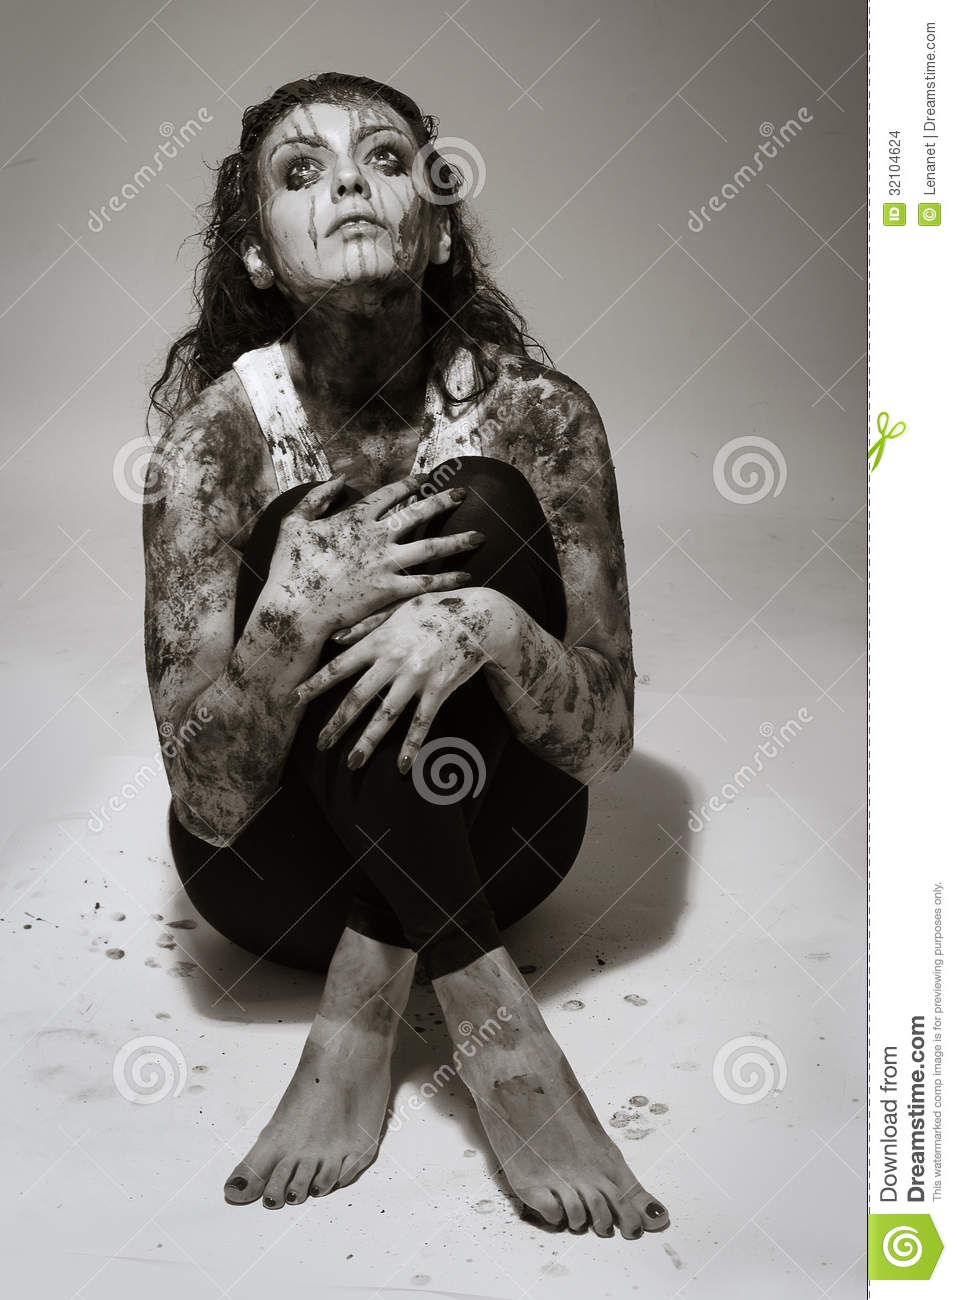 Woman Covered In Mud Stock Images - Image 32104624-7507